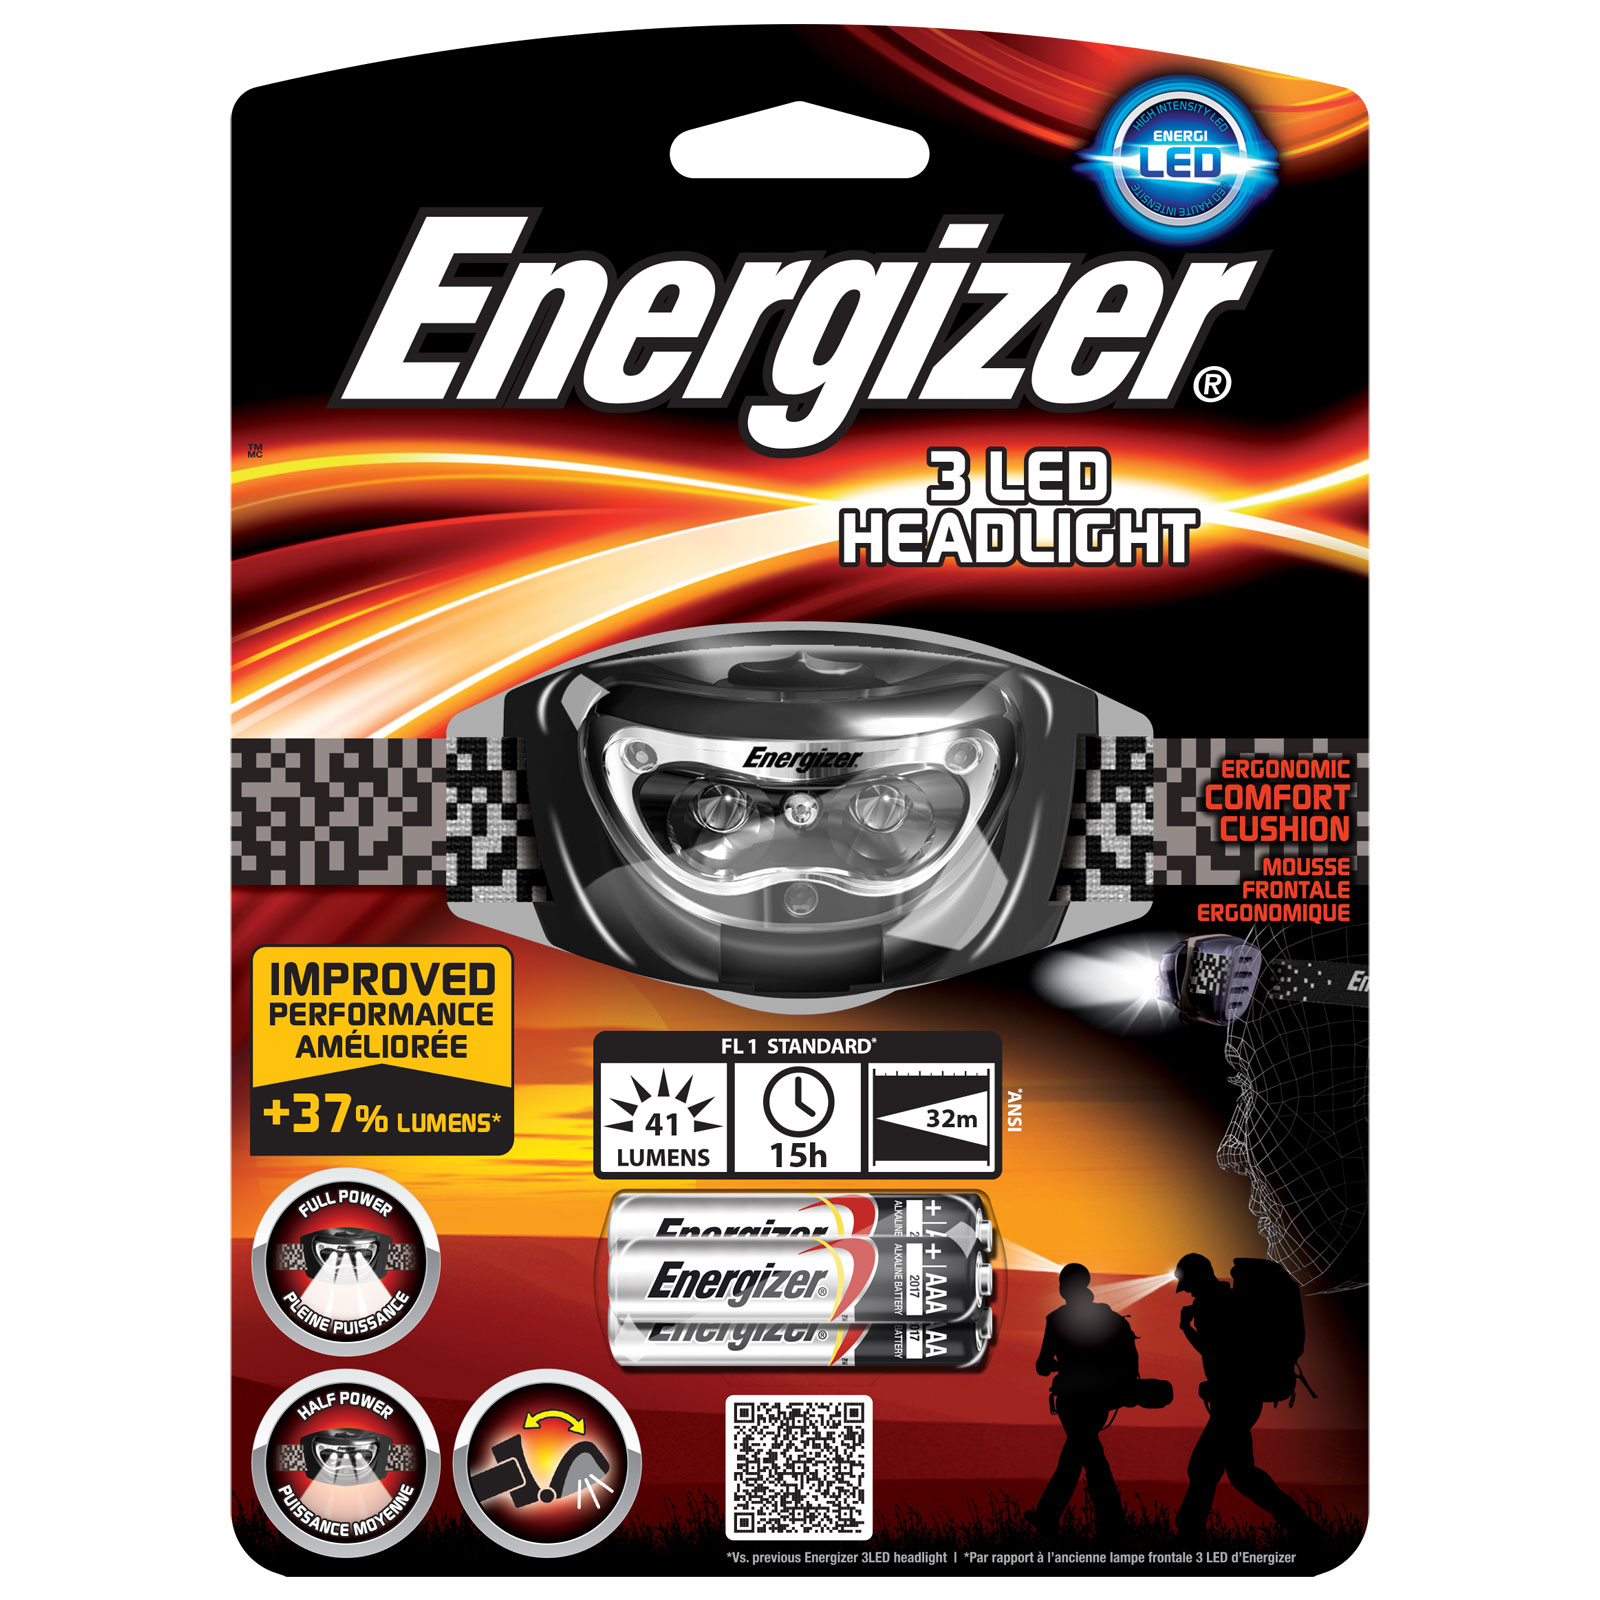 energizer 3 led headlight lampe energizer sur ldlc. Black Bedroom Furniture Sets. Home Design Ideas